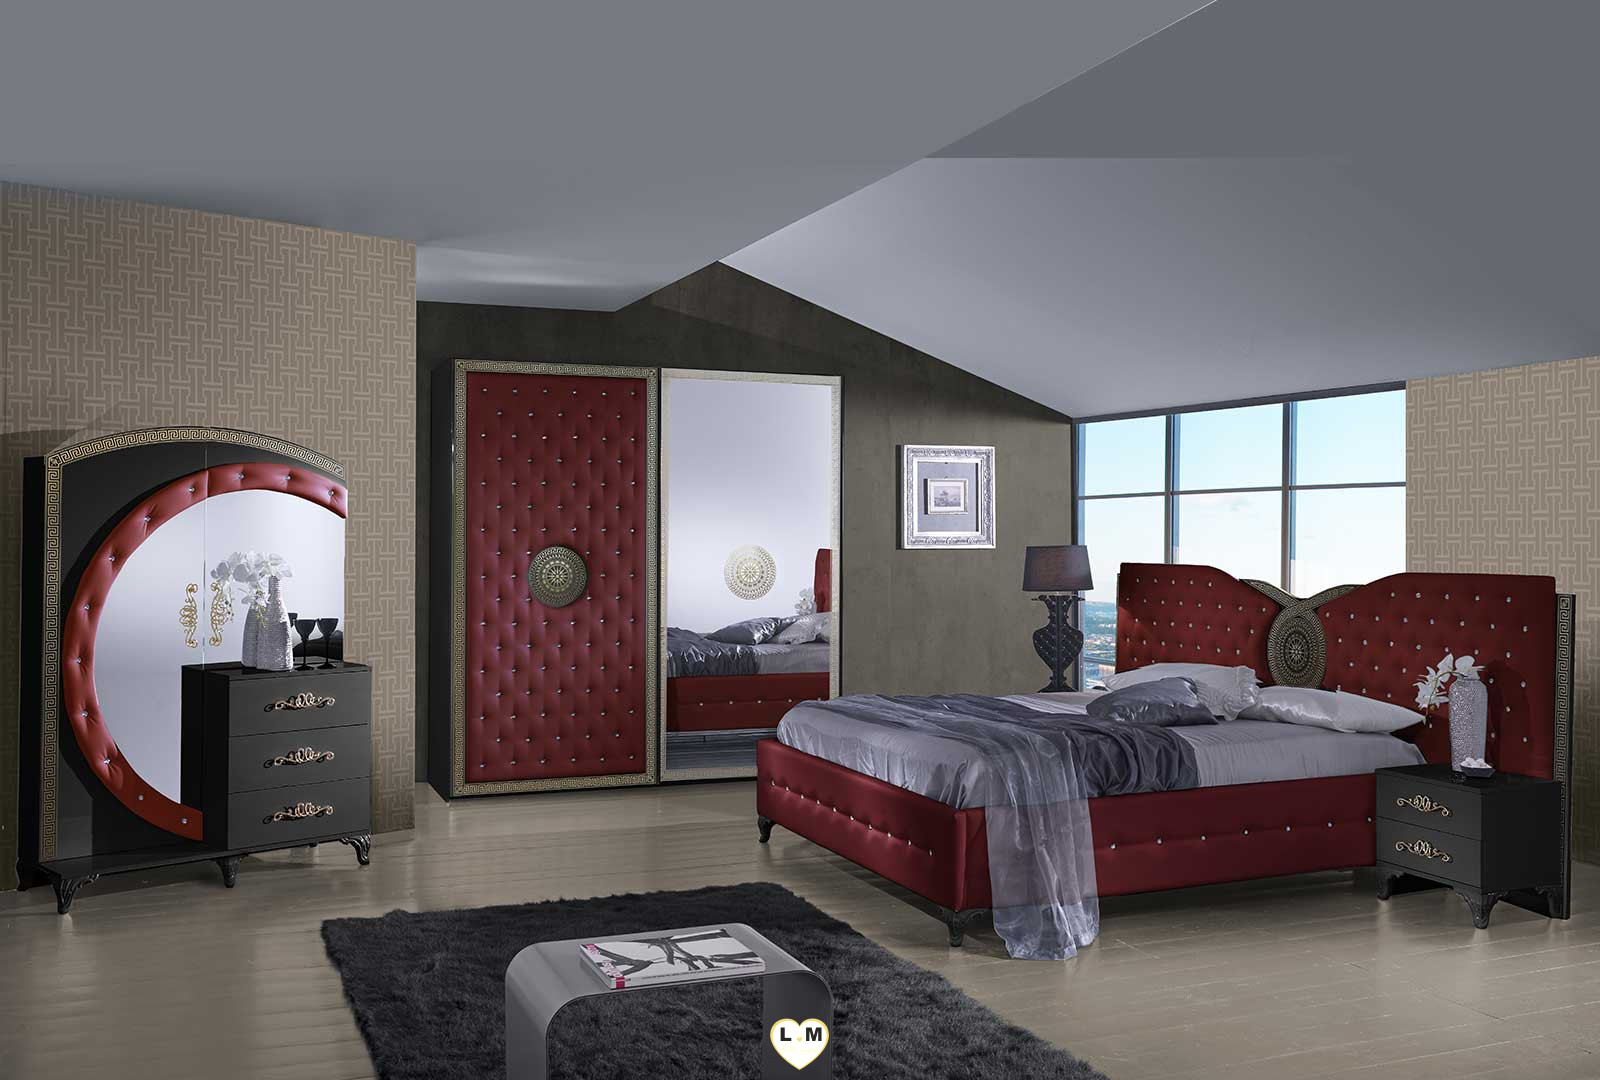 tana bordeaux et noir chambre a coucher le chevet lignemeuble com. Black Bedroom Furniture Sets. Home Design Ideas